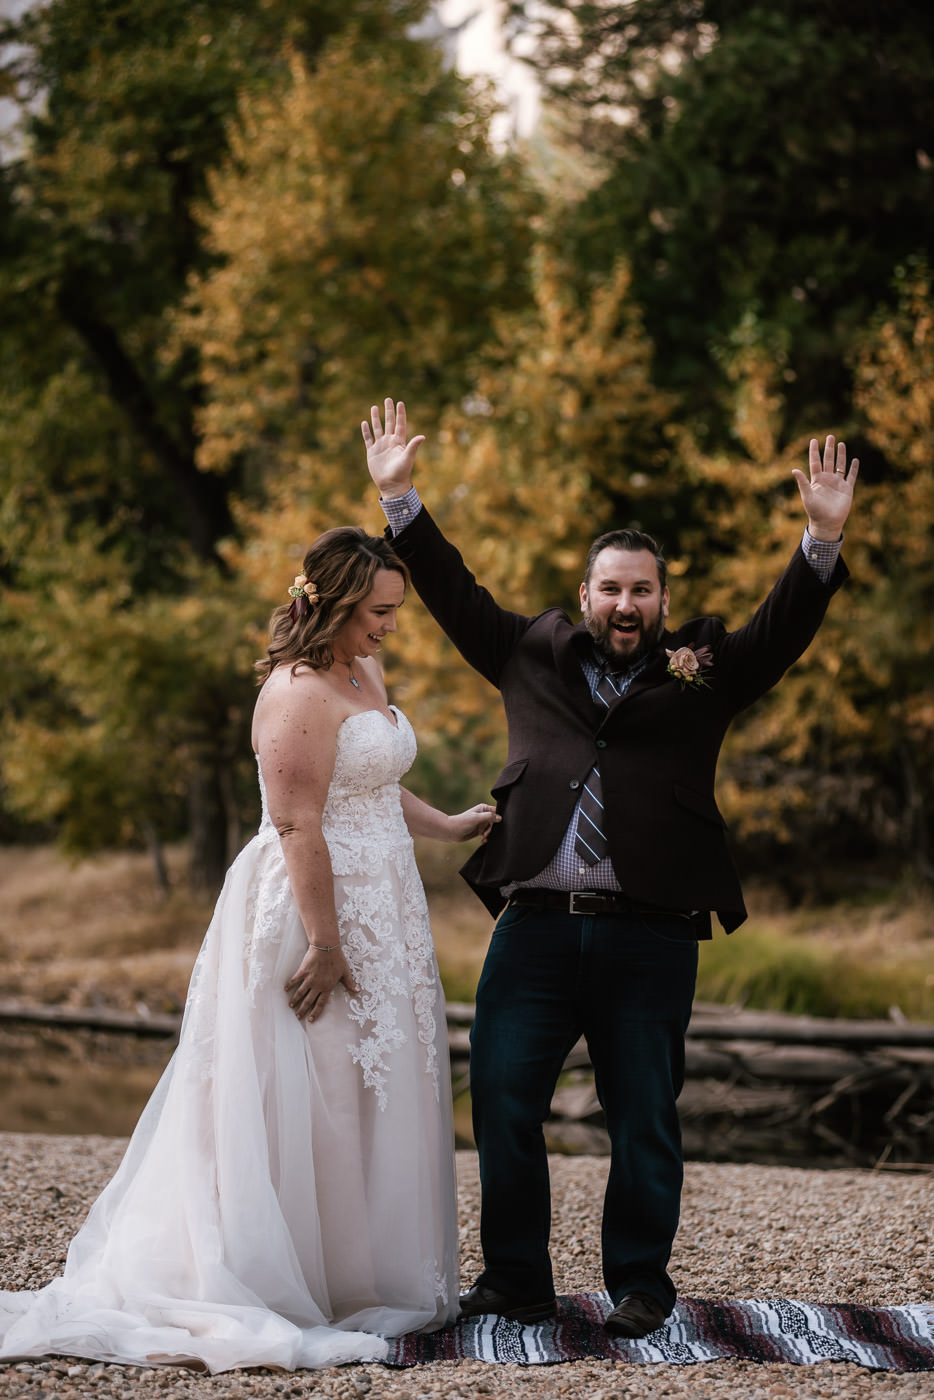 cathedral-beach-elopement-ceremony-yosemite-19.jpg